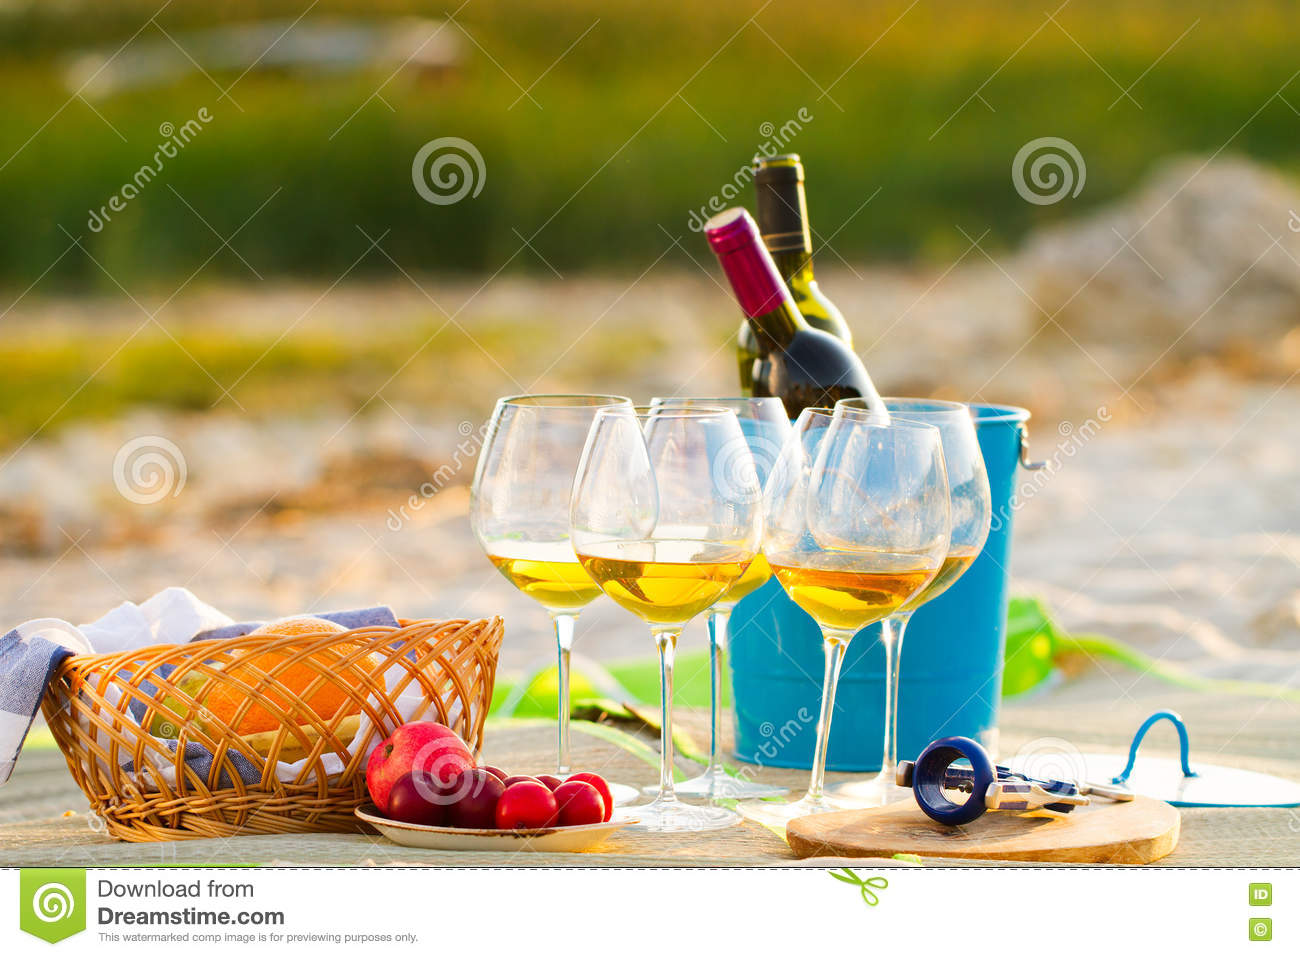 Glasses of the white wine on the beach on sunset, picnic theme,